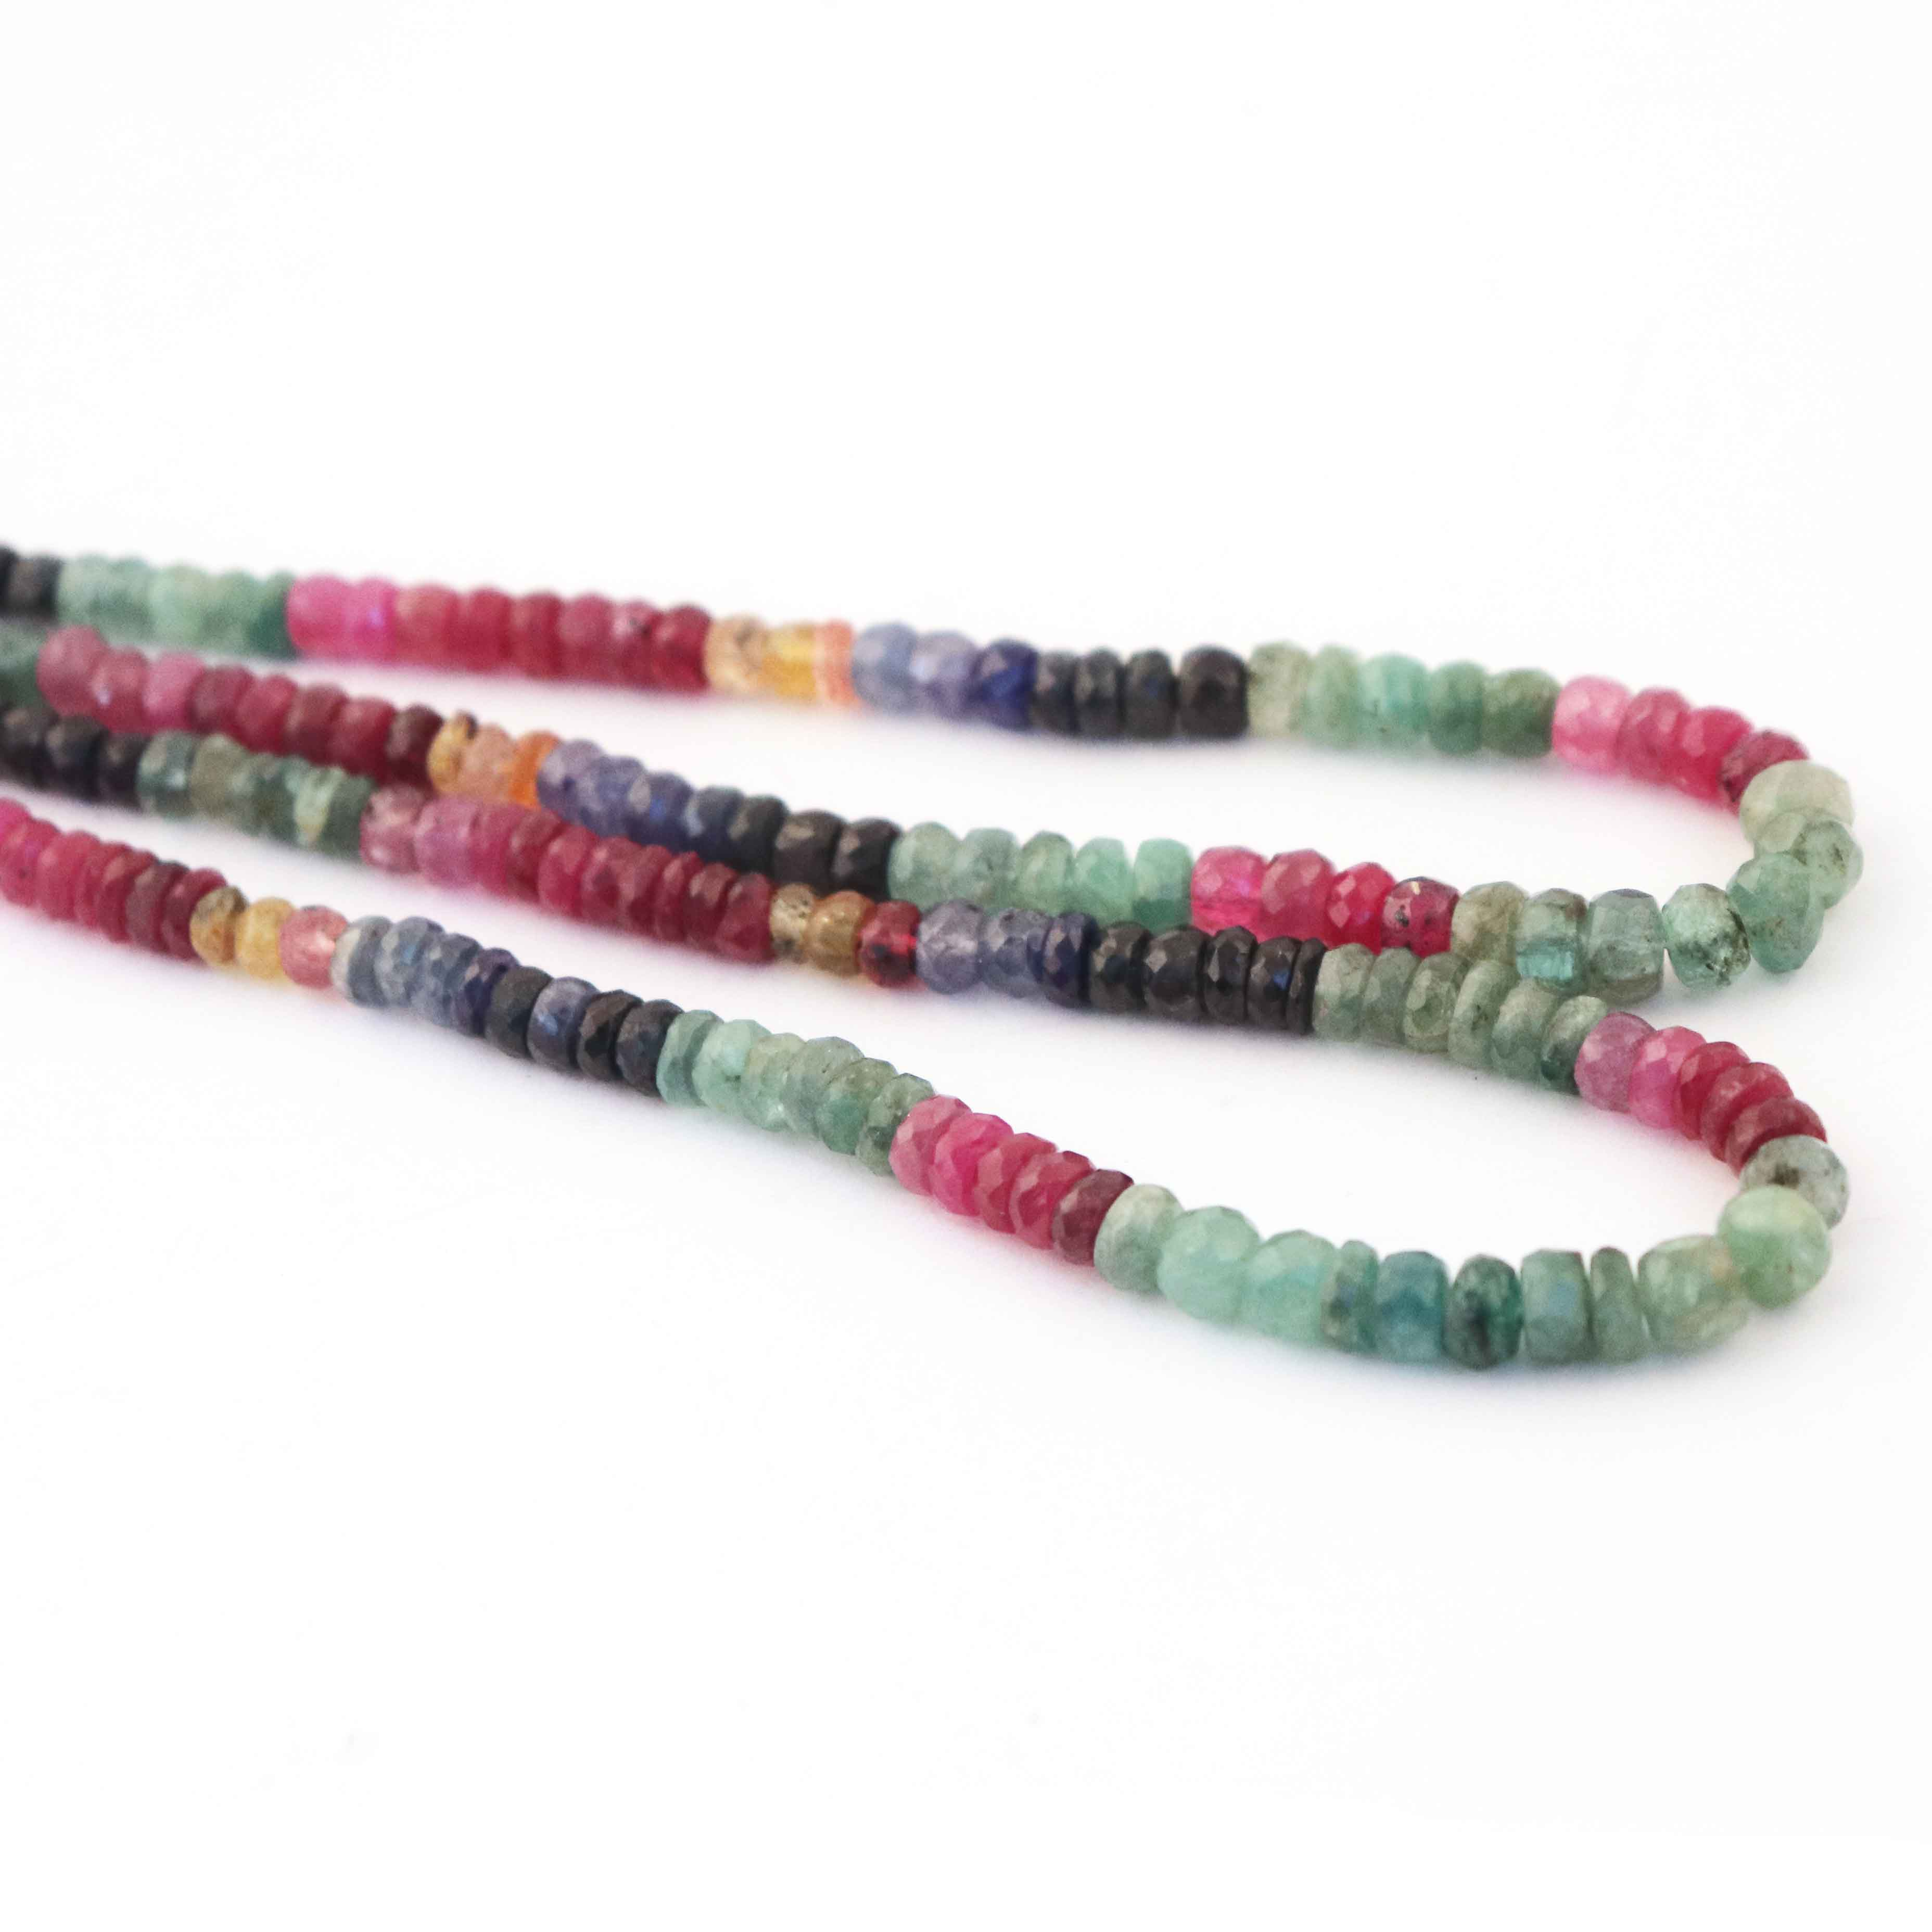 Rare /& Natural Necklace 5 Strand Of Genuine Multi Sapphire Necklace Faceted Rondelle Beads Stunning Elegant Necklace 4mm BRU3379